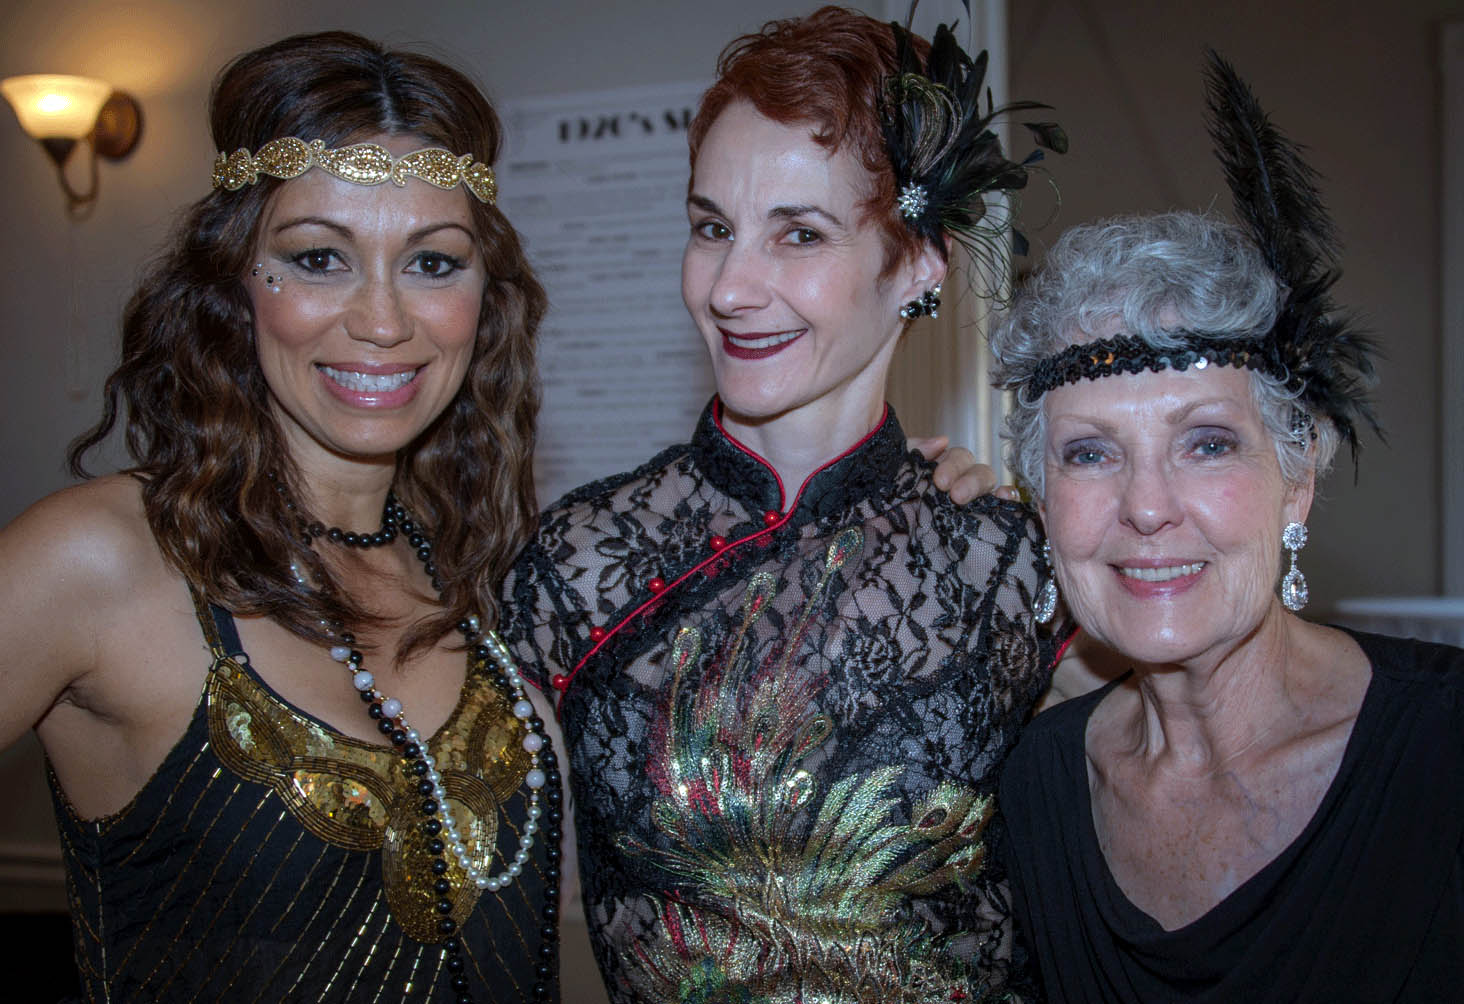 Q&A with Leah De Lane: Party-goers experience the ambiance of a 'speakeasy' during Prohibition